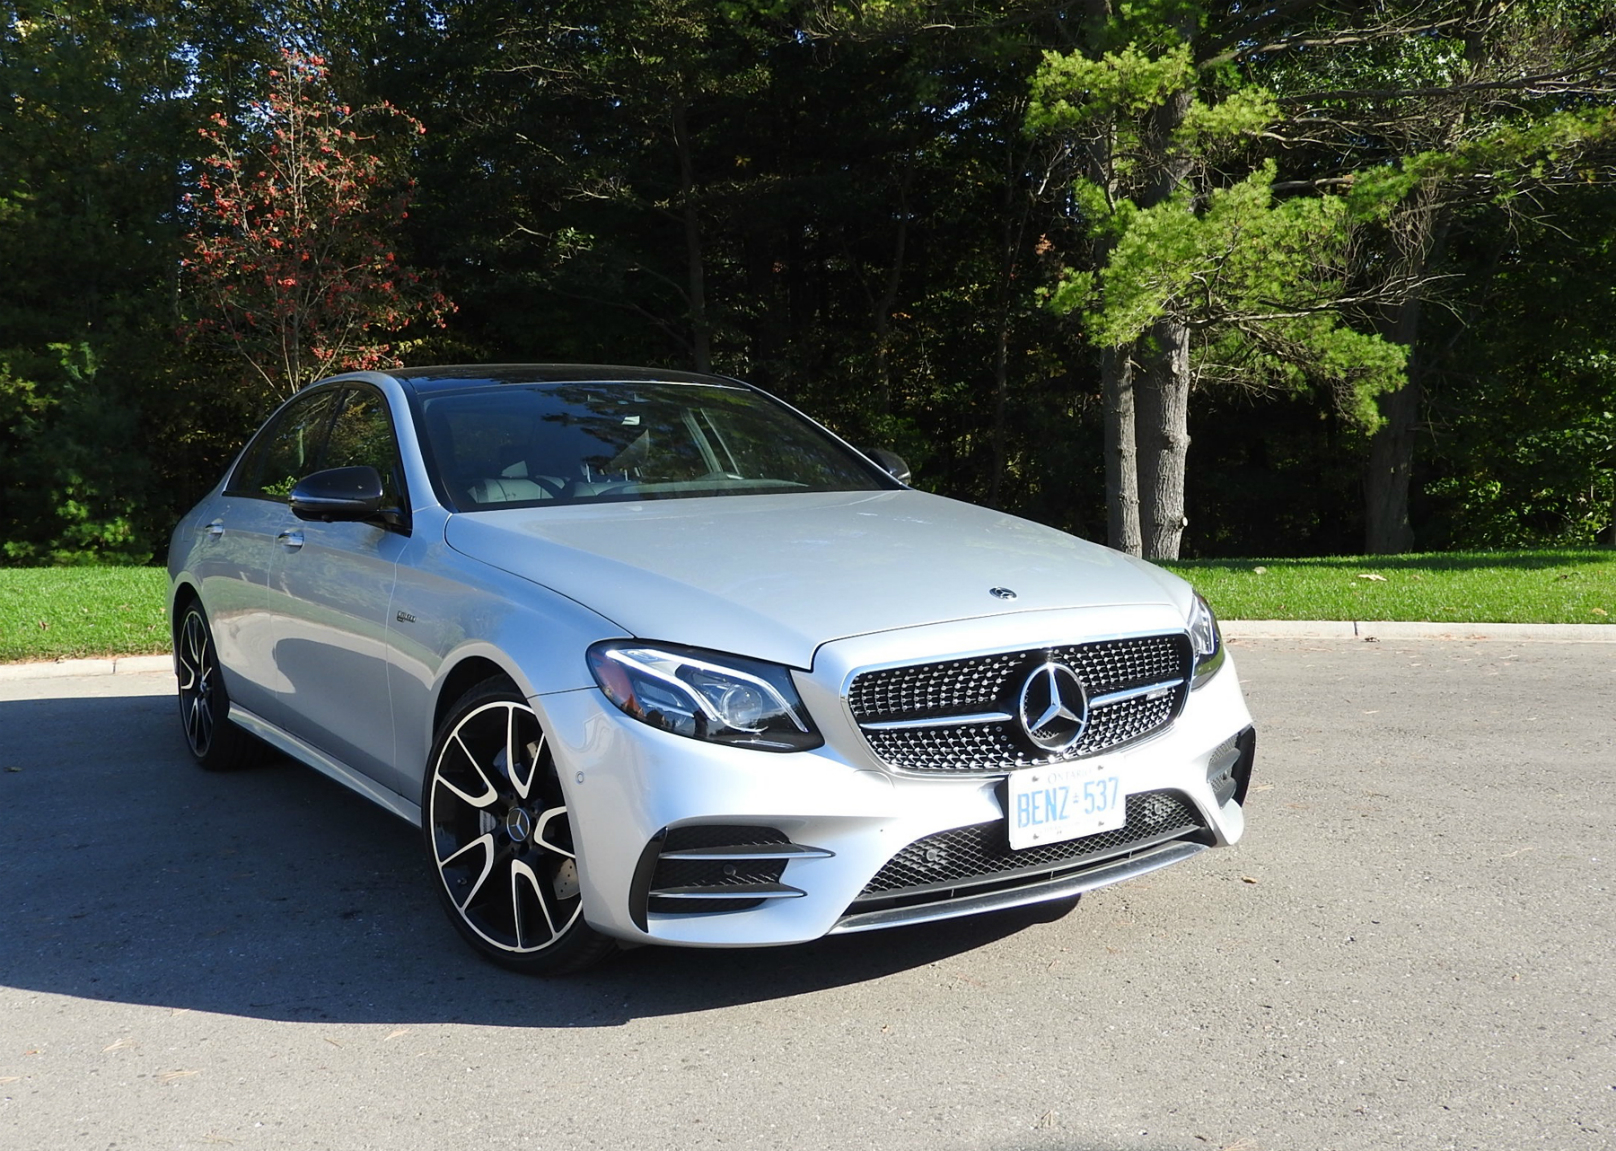 Less Is Quite Enough In The Amg E43 4matic